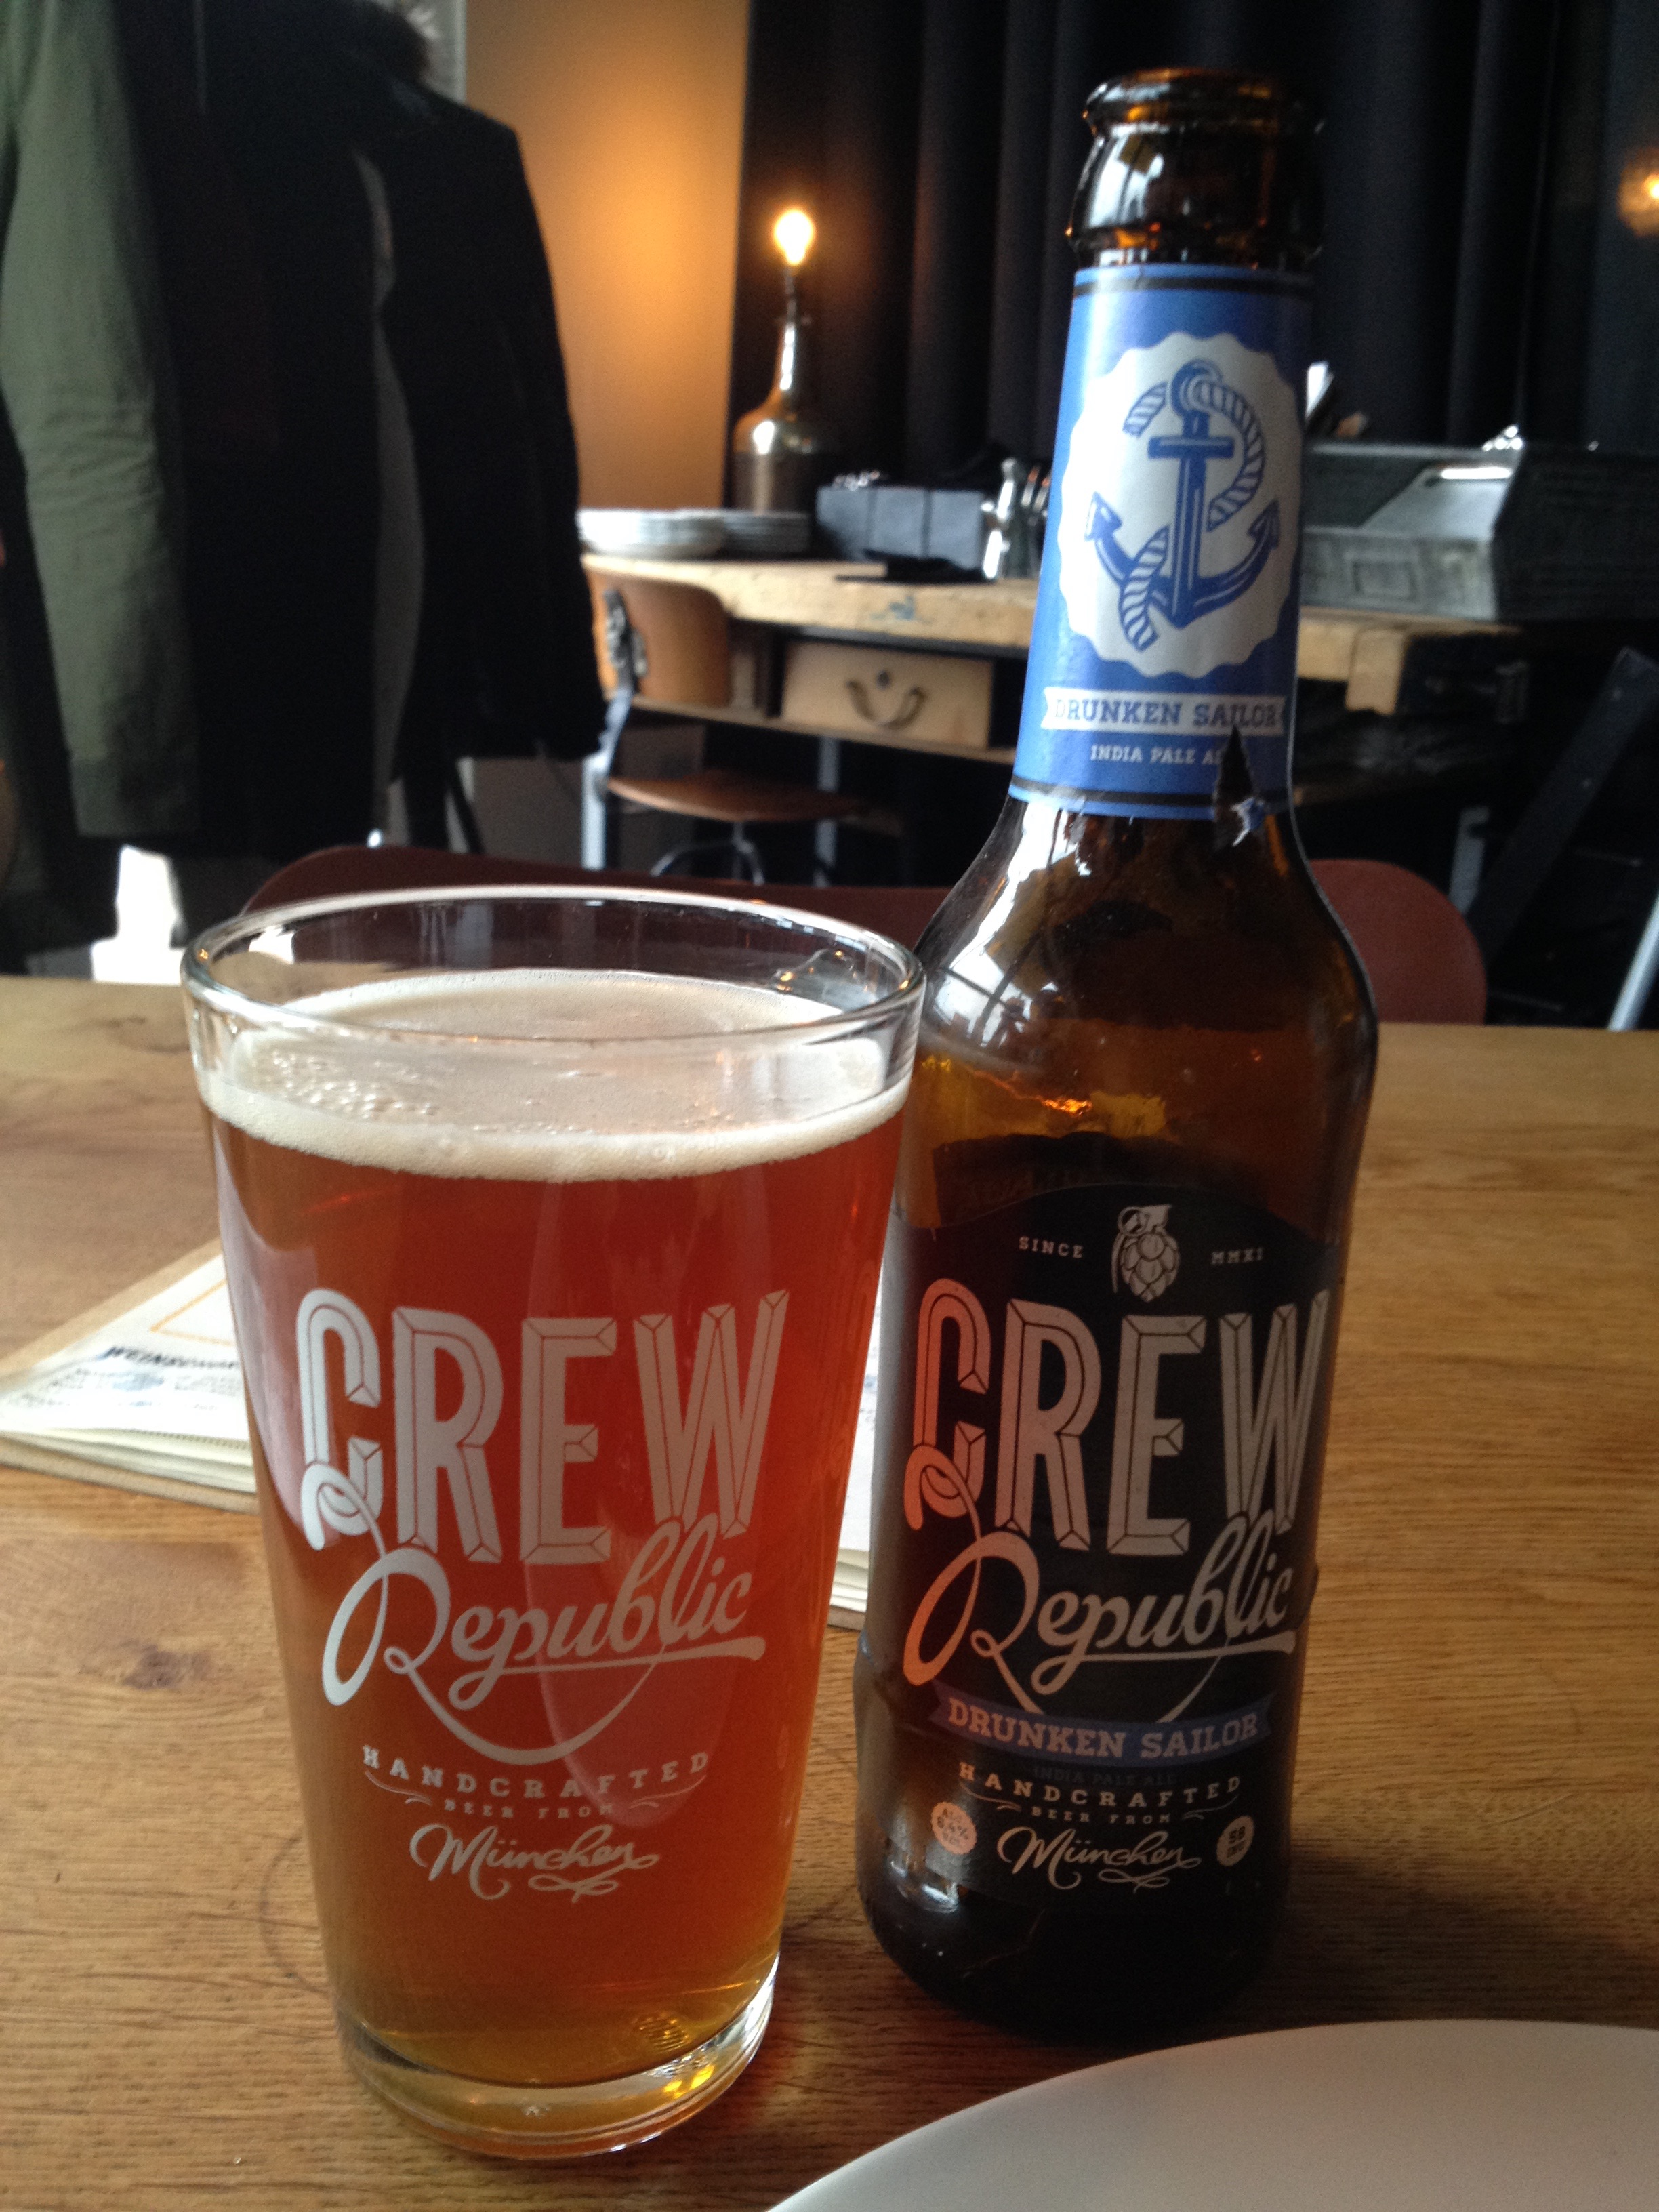 Crew Republic Drunken Sailer IPA (from Munich) on a previous trip to 87